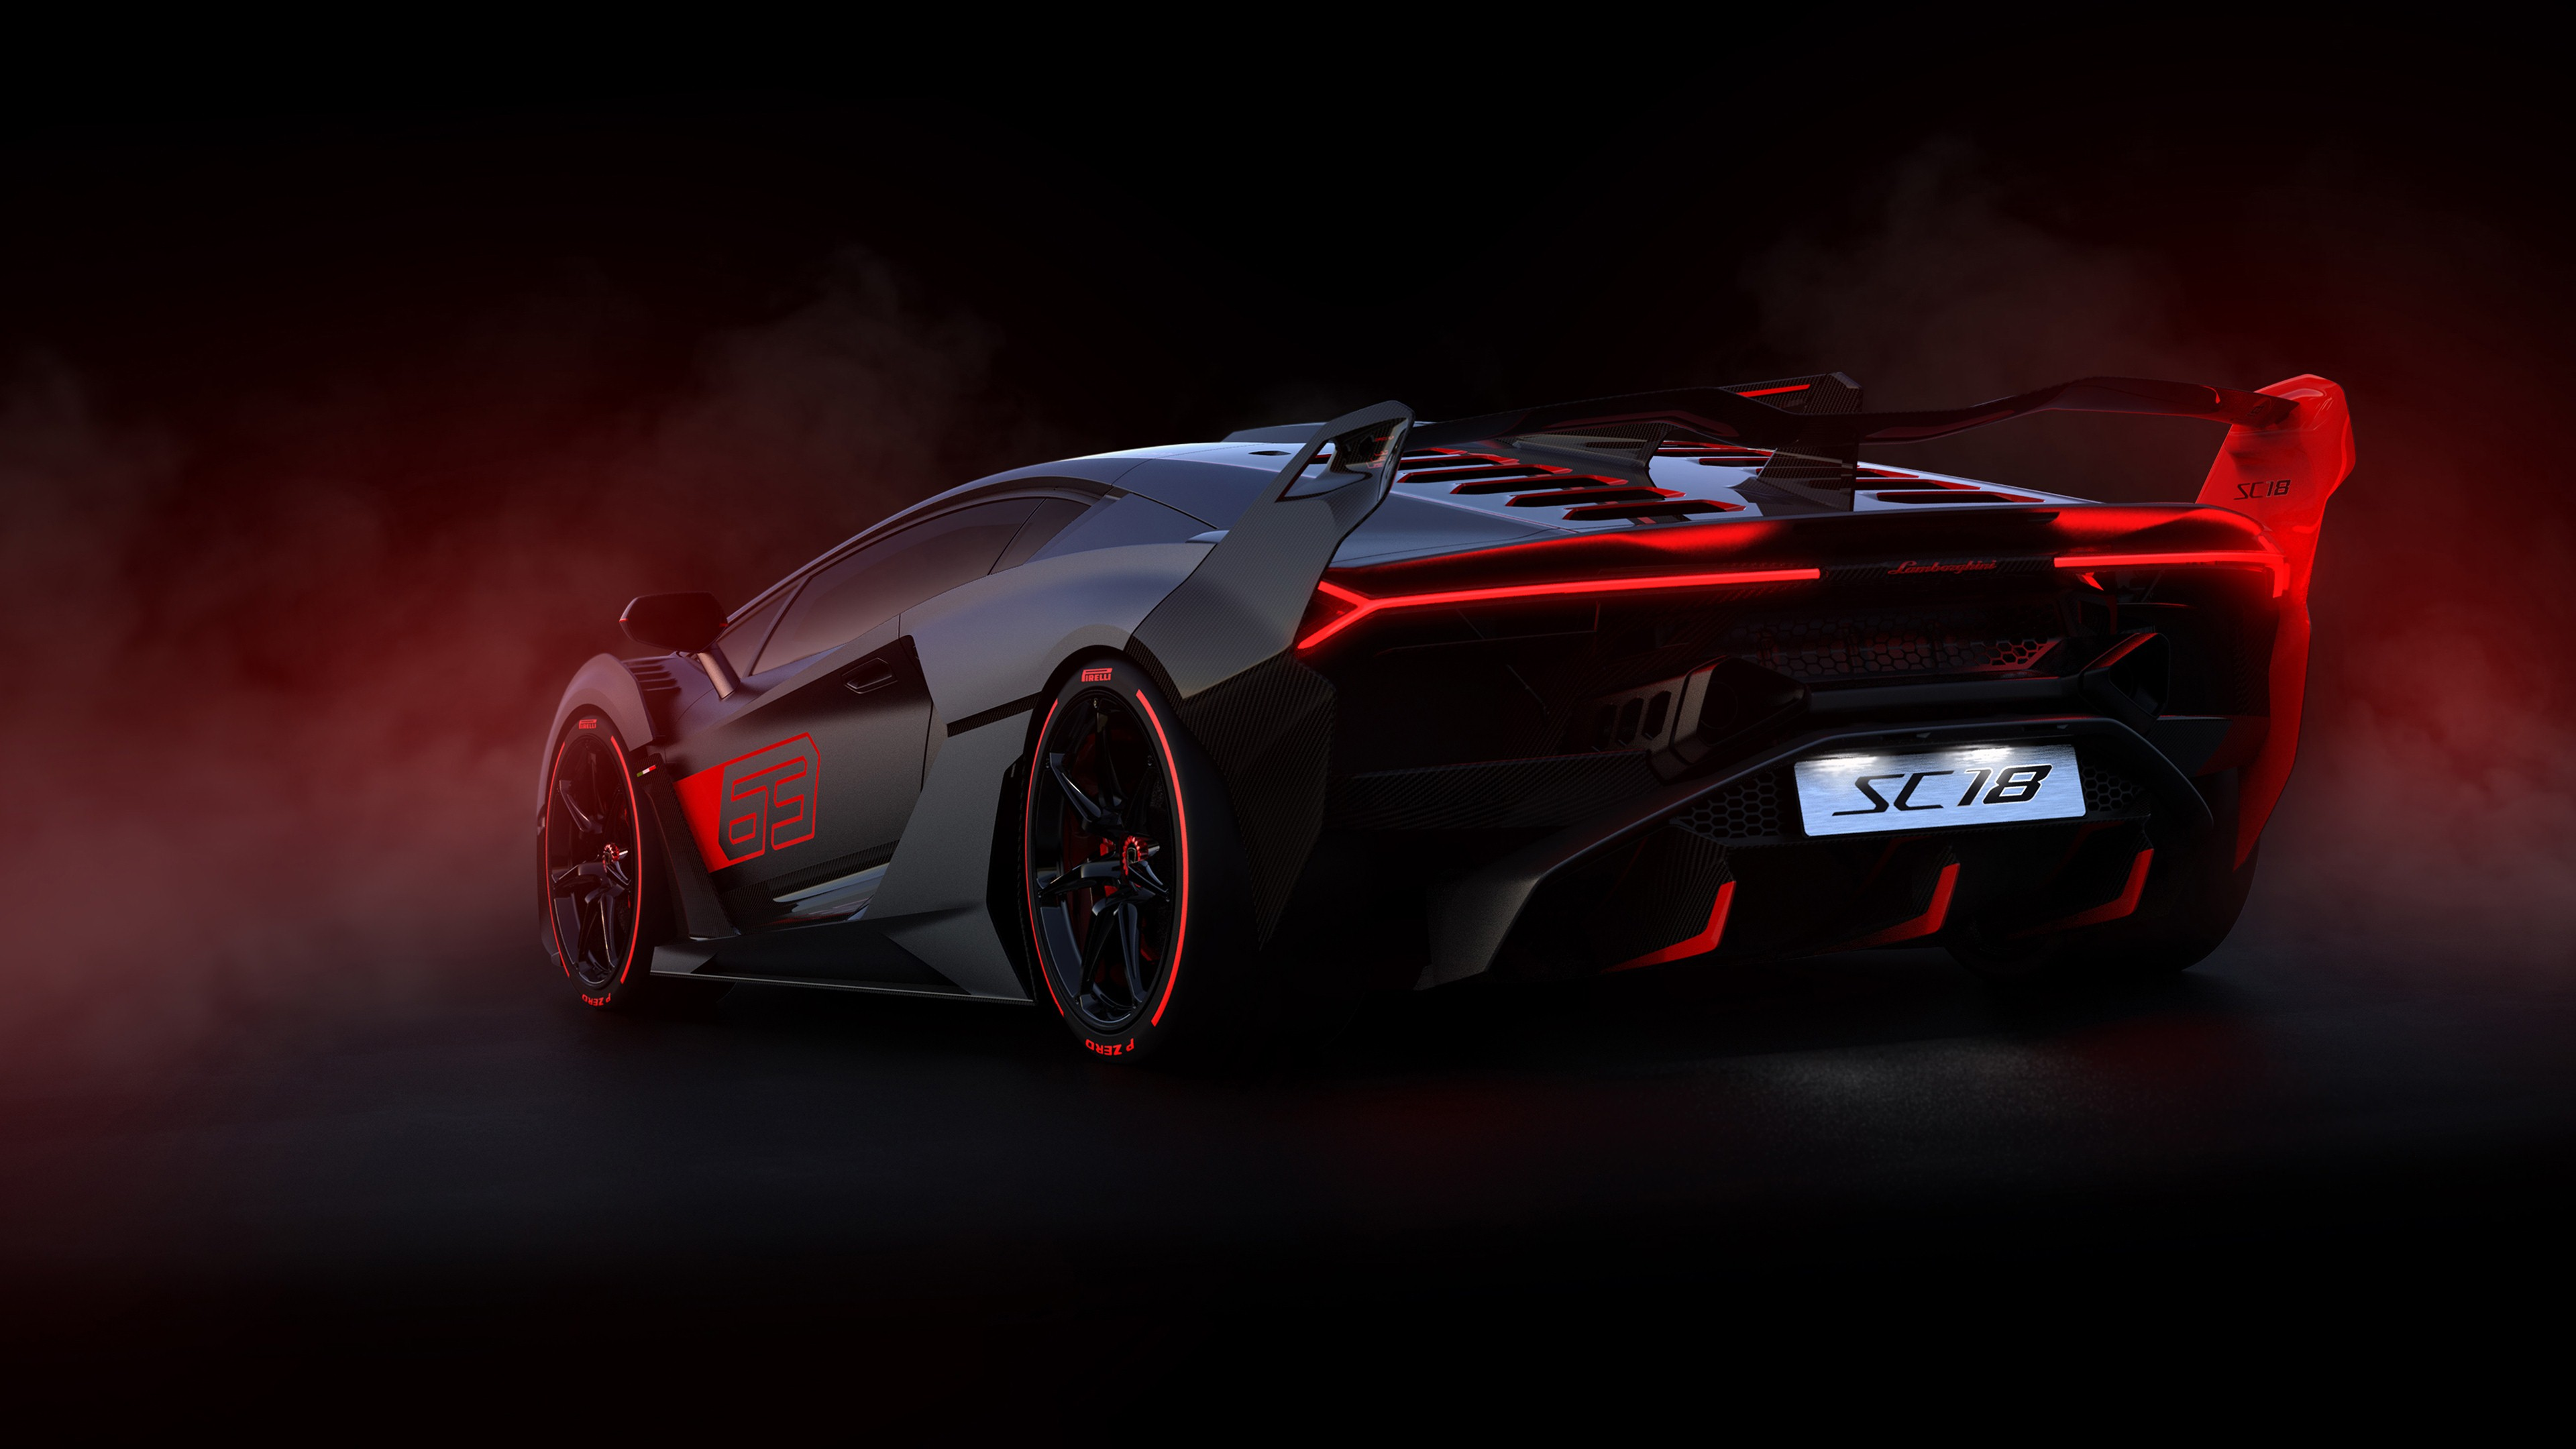 Hd Car Wallpaper Posted By Sarah Peltier